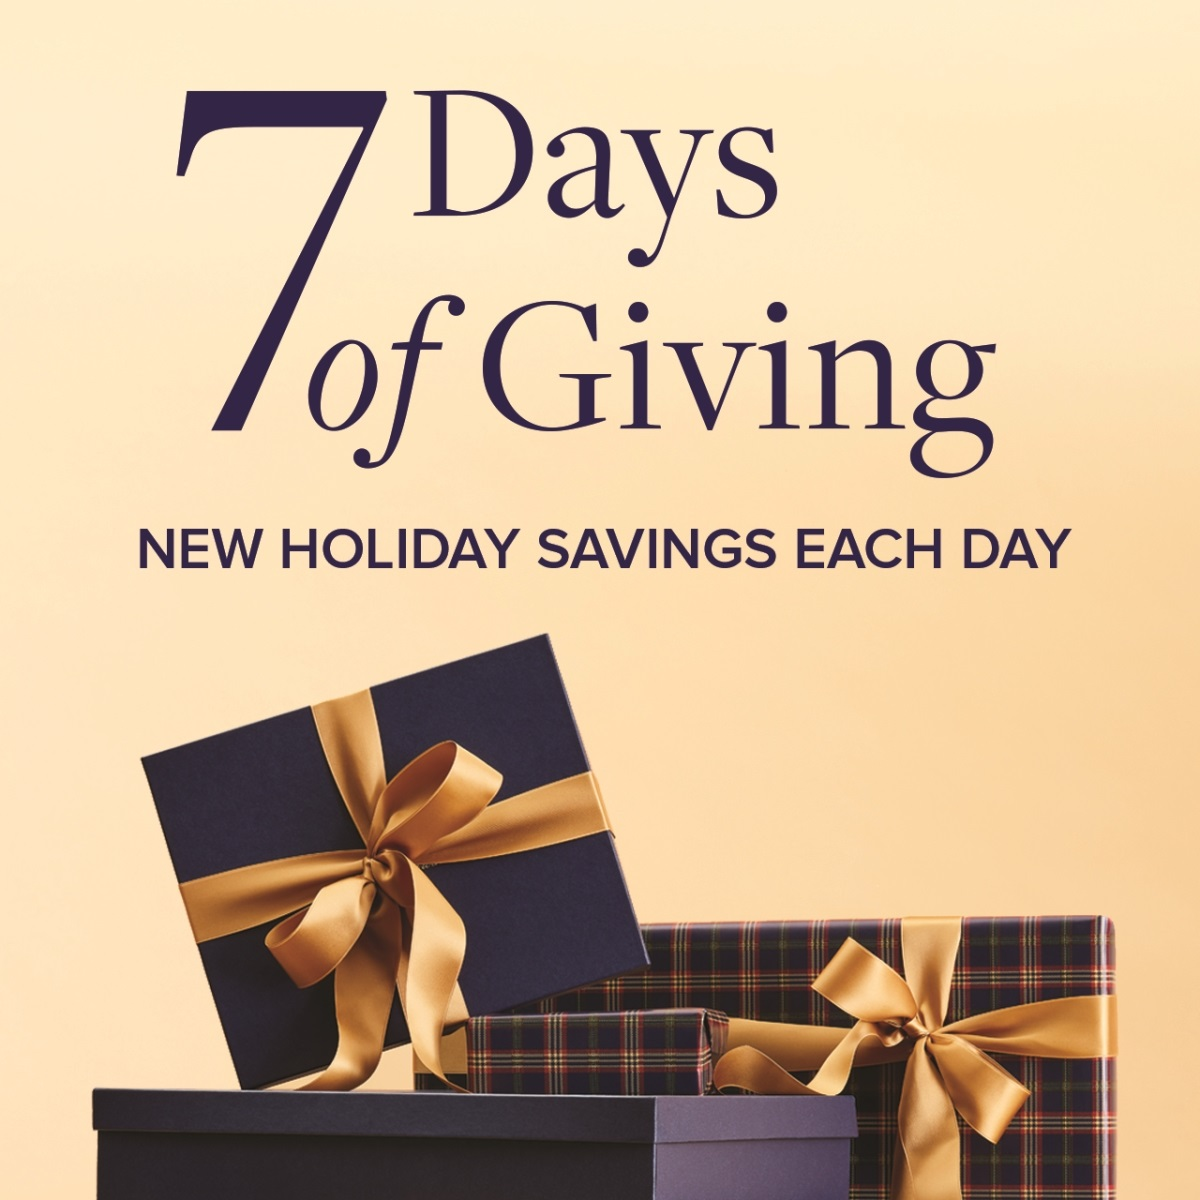 7 Days of Giving from Brooks Brothers